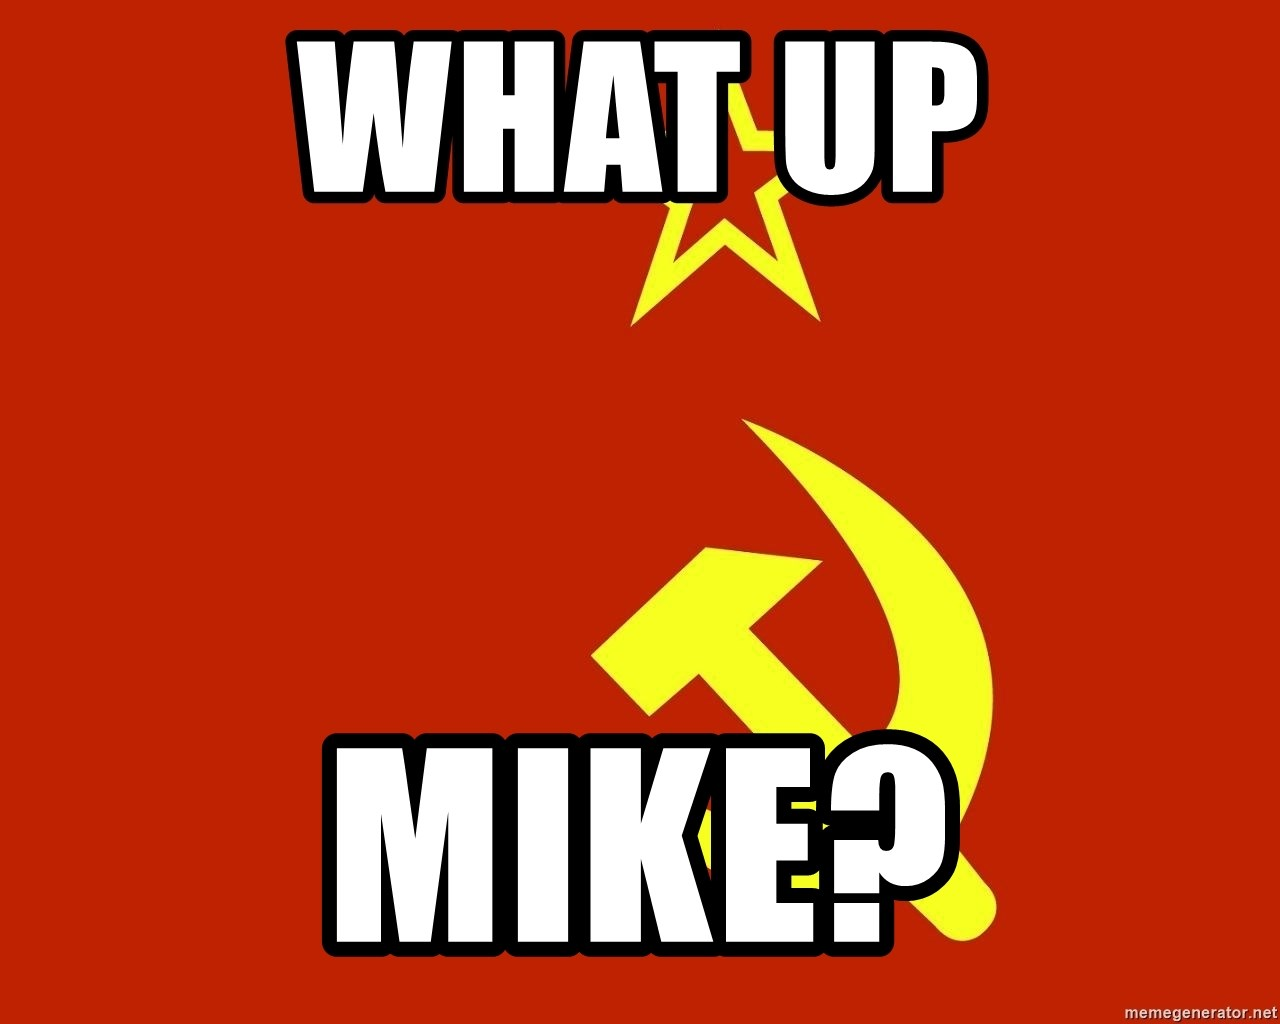 In Soviet Russia - what up mike?